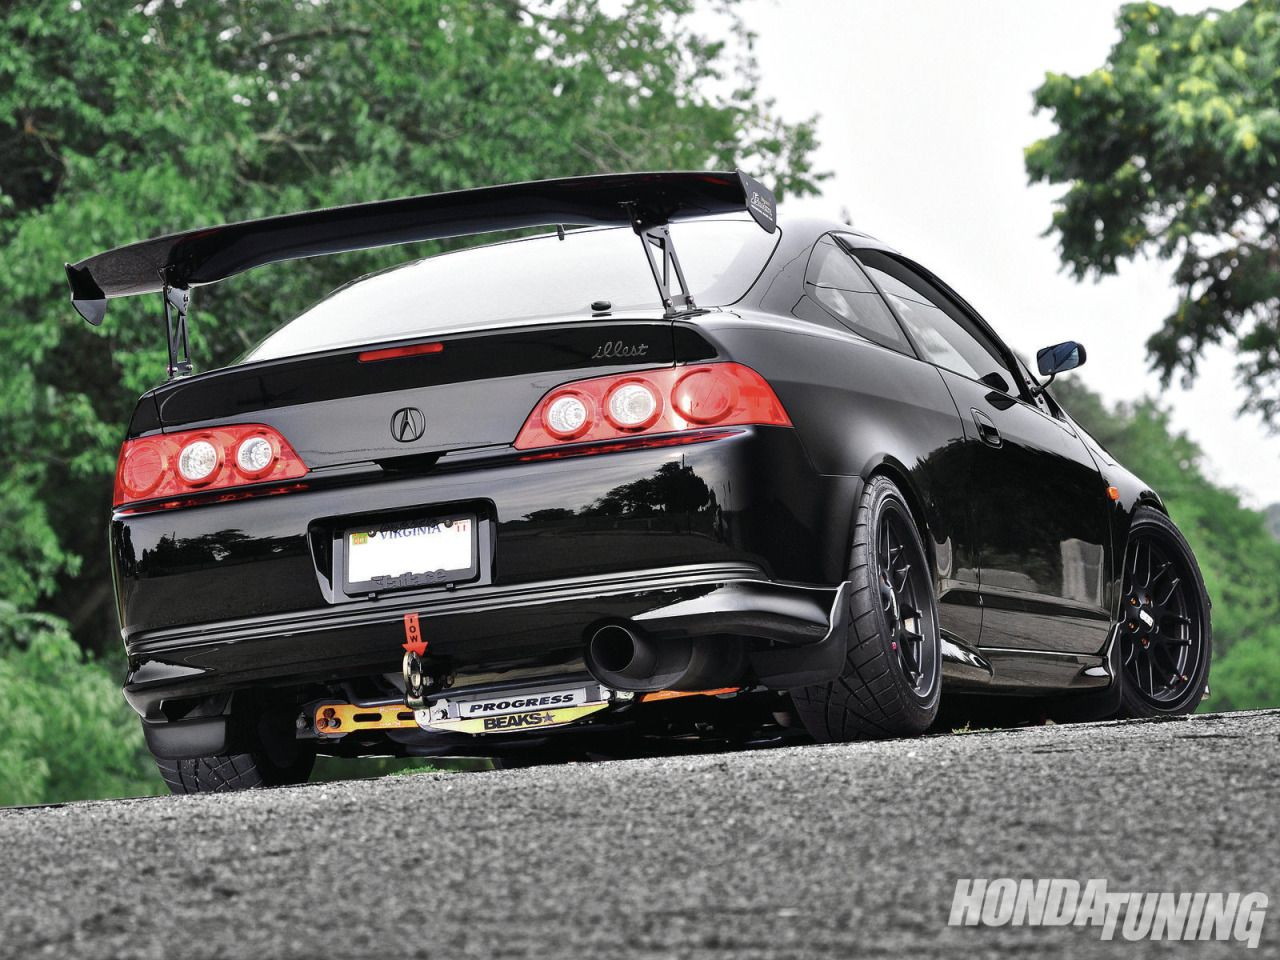 Pin by Jocelyn Morales on jdm | 2006 acura rsx, Acura rsx type s